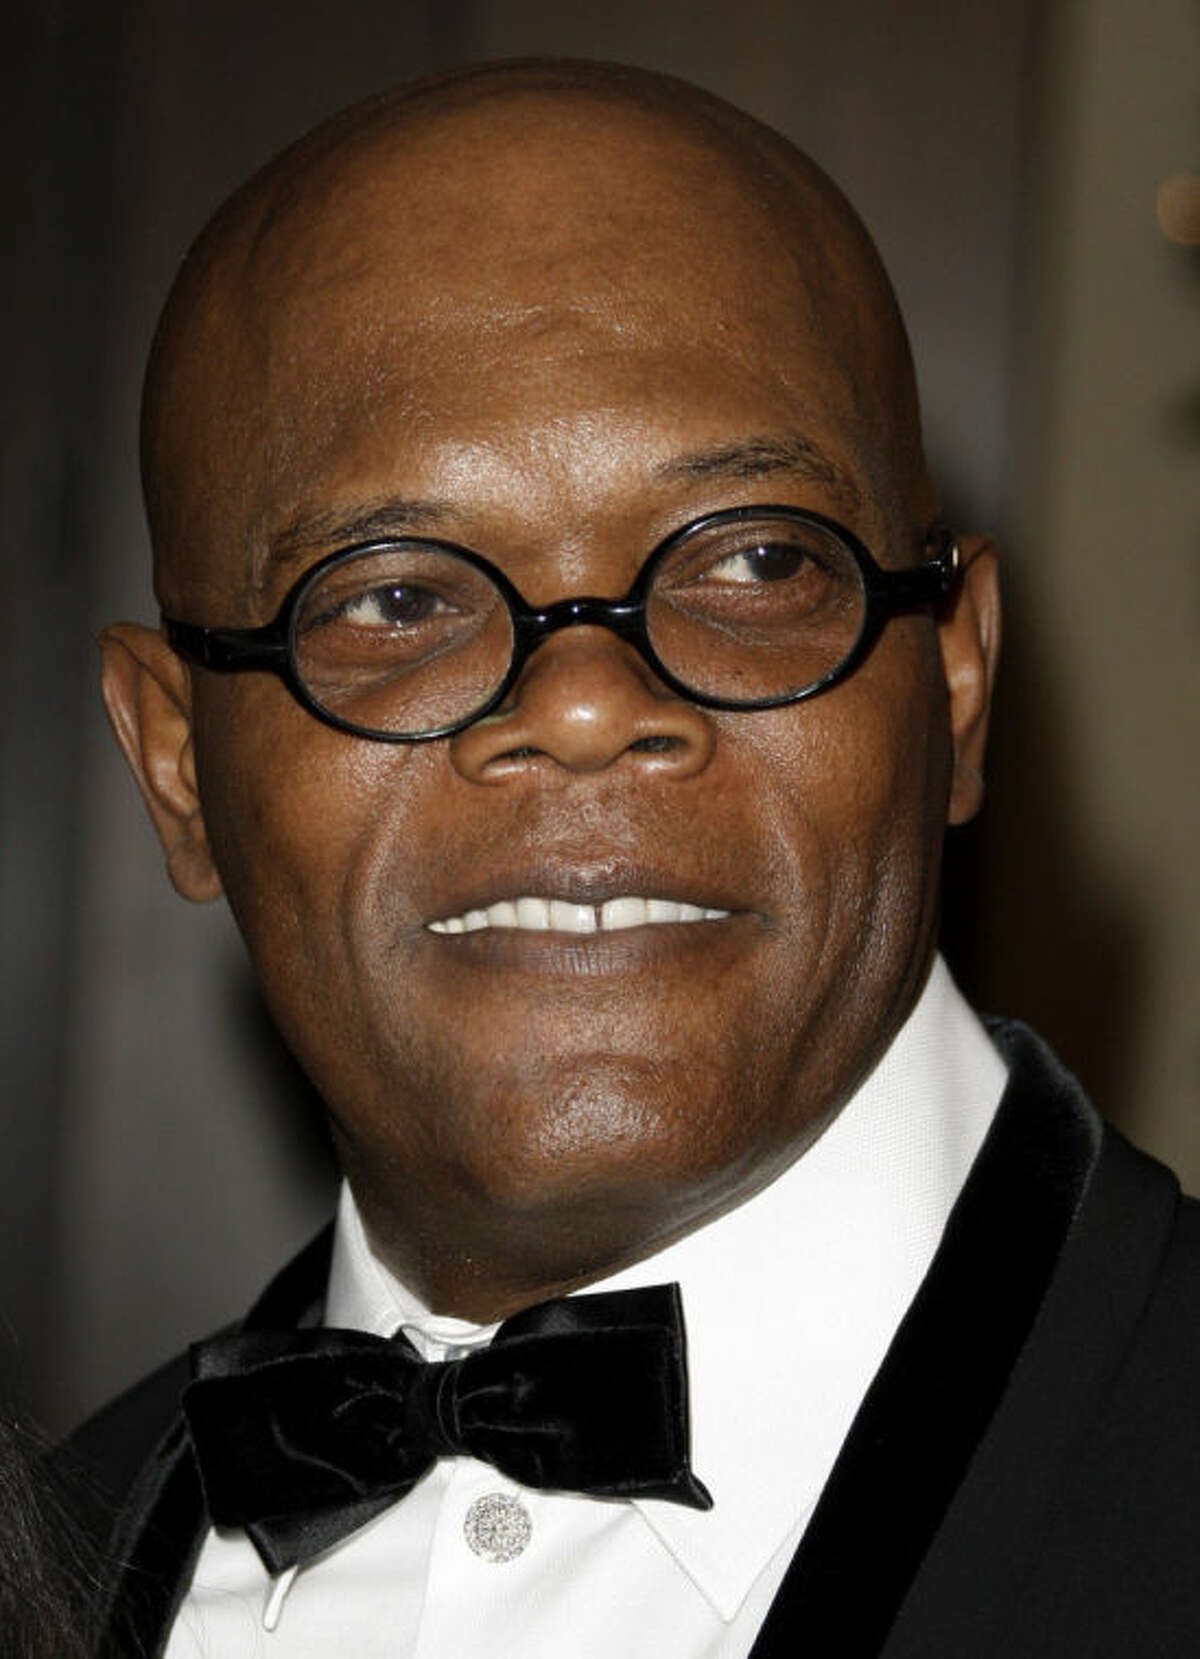 File-This Dec. 1, 2008 file photo shows actor Samuel L. Jackson arriving at the American Cinematheque Award gala honoring him in Beverly Hills, Calif. Los Angeles newscaster has apologized to Jackson for confusing him with Laurence Fishburne. KTLA entertainment reporter Sam Rubin was interviewing Jackson on Monday Feb. 10, 2014, about the forthcoming film